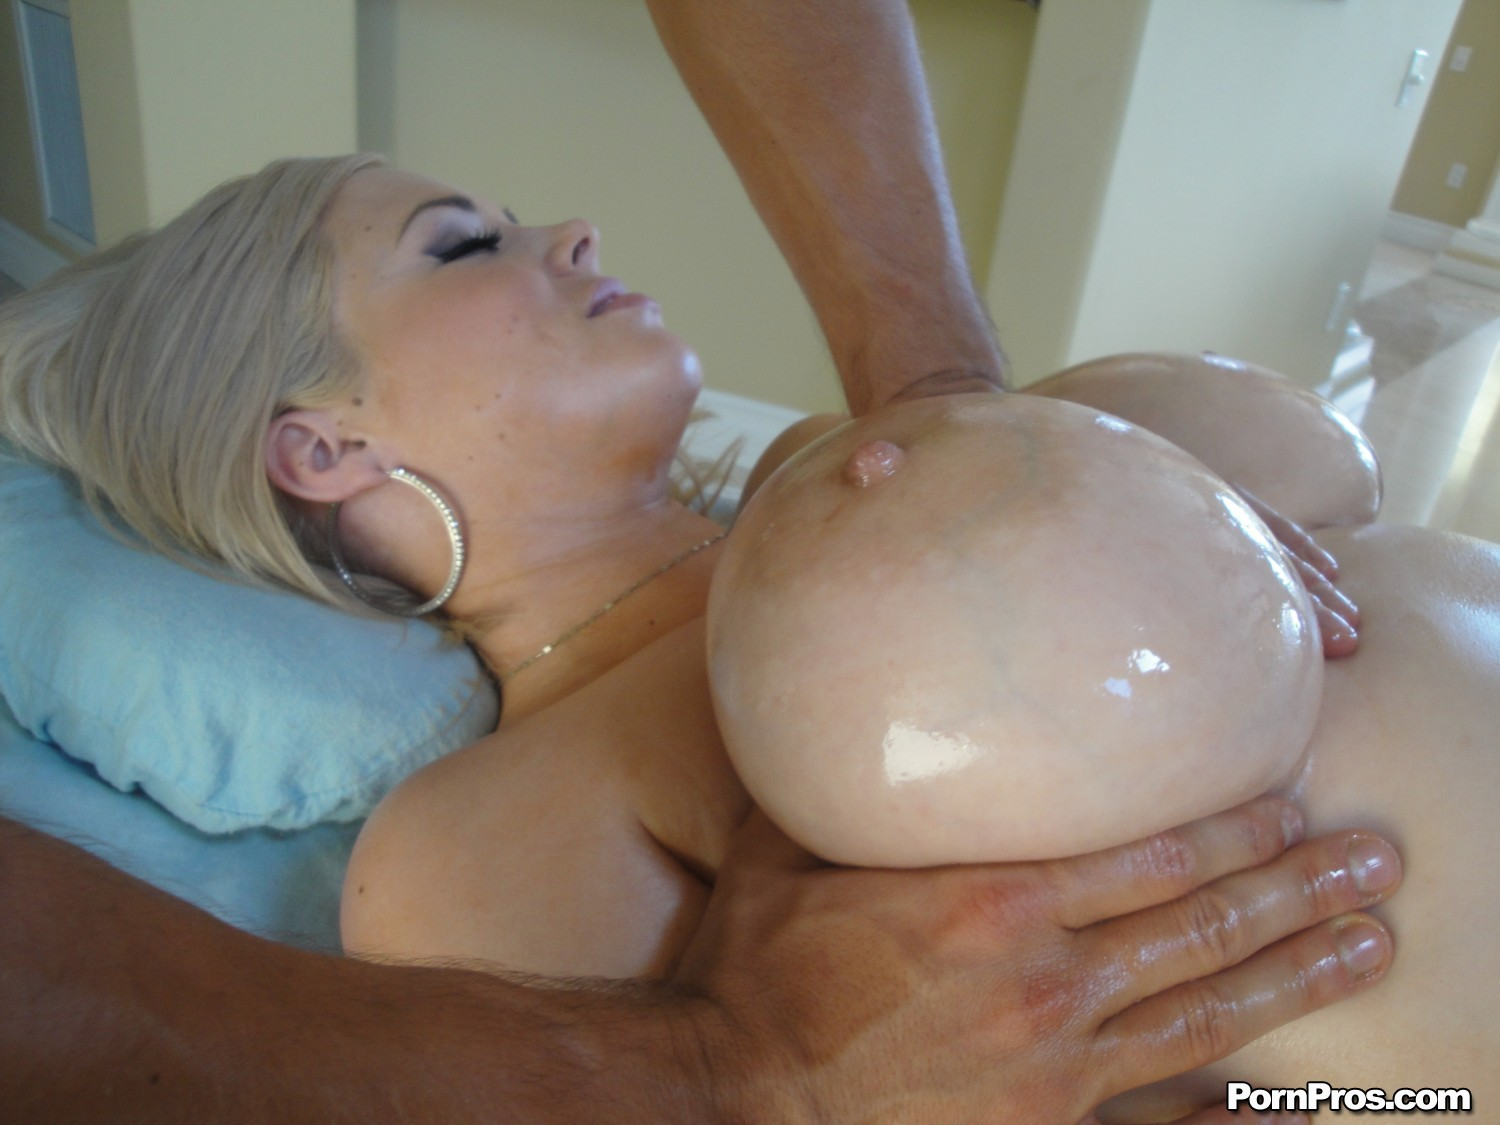 http://images.galleries.pornpros.com/galleries.massagecreep.com/htdocs/pb03/pb03_kathycox/full/06.jpg